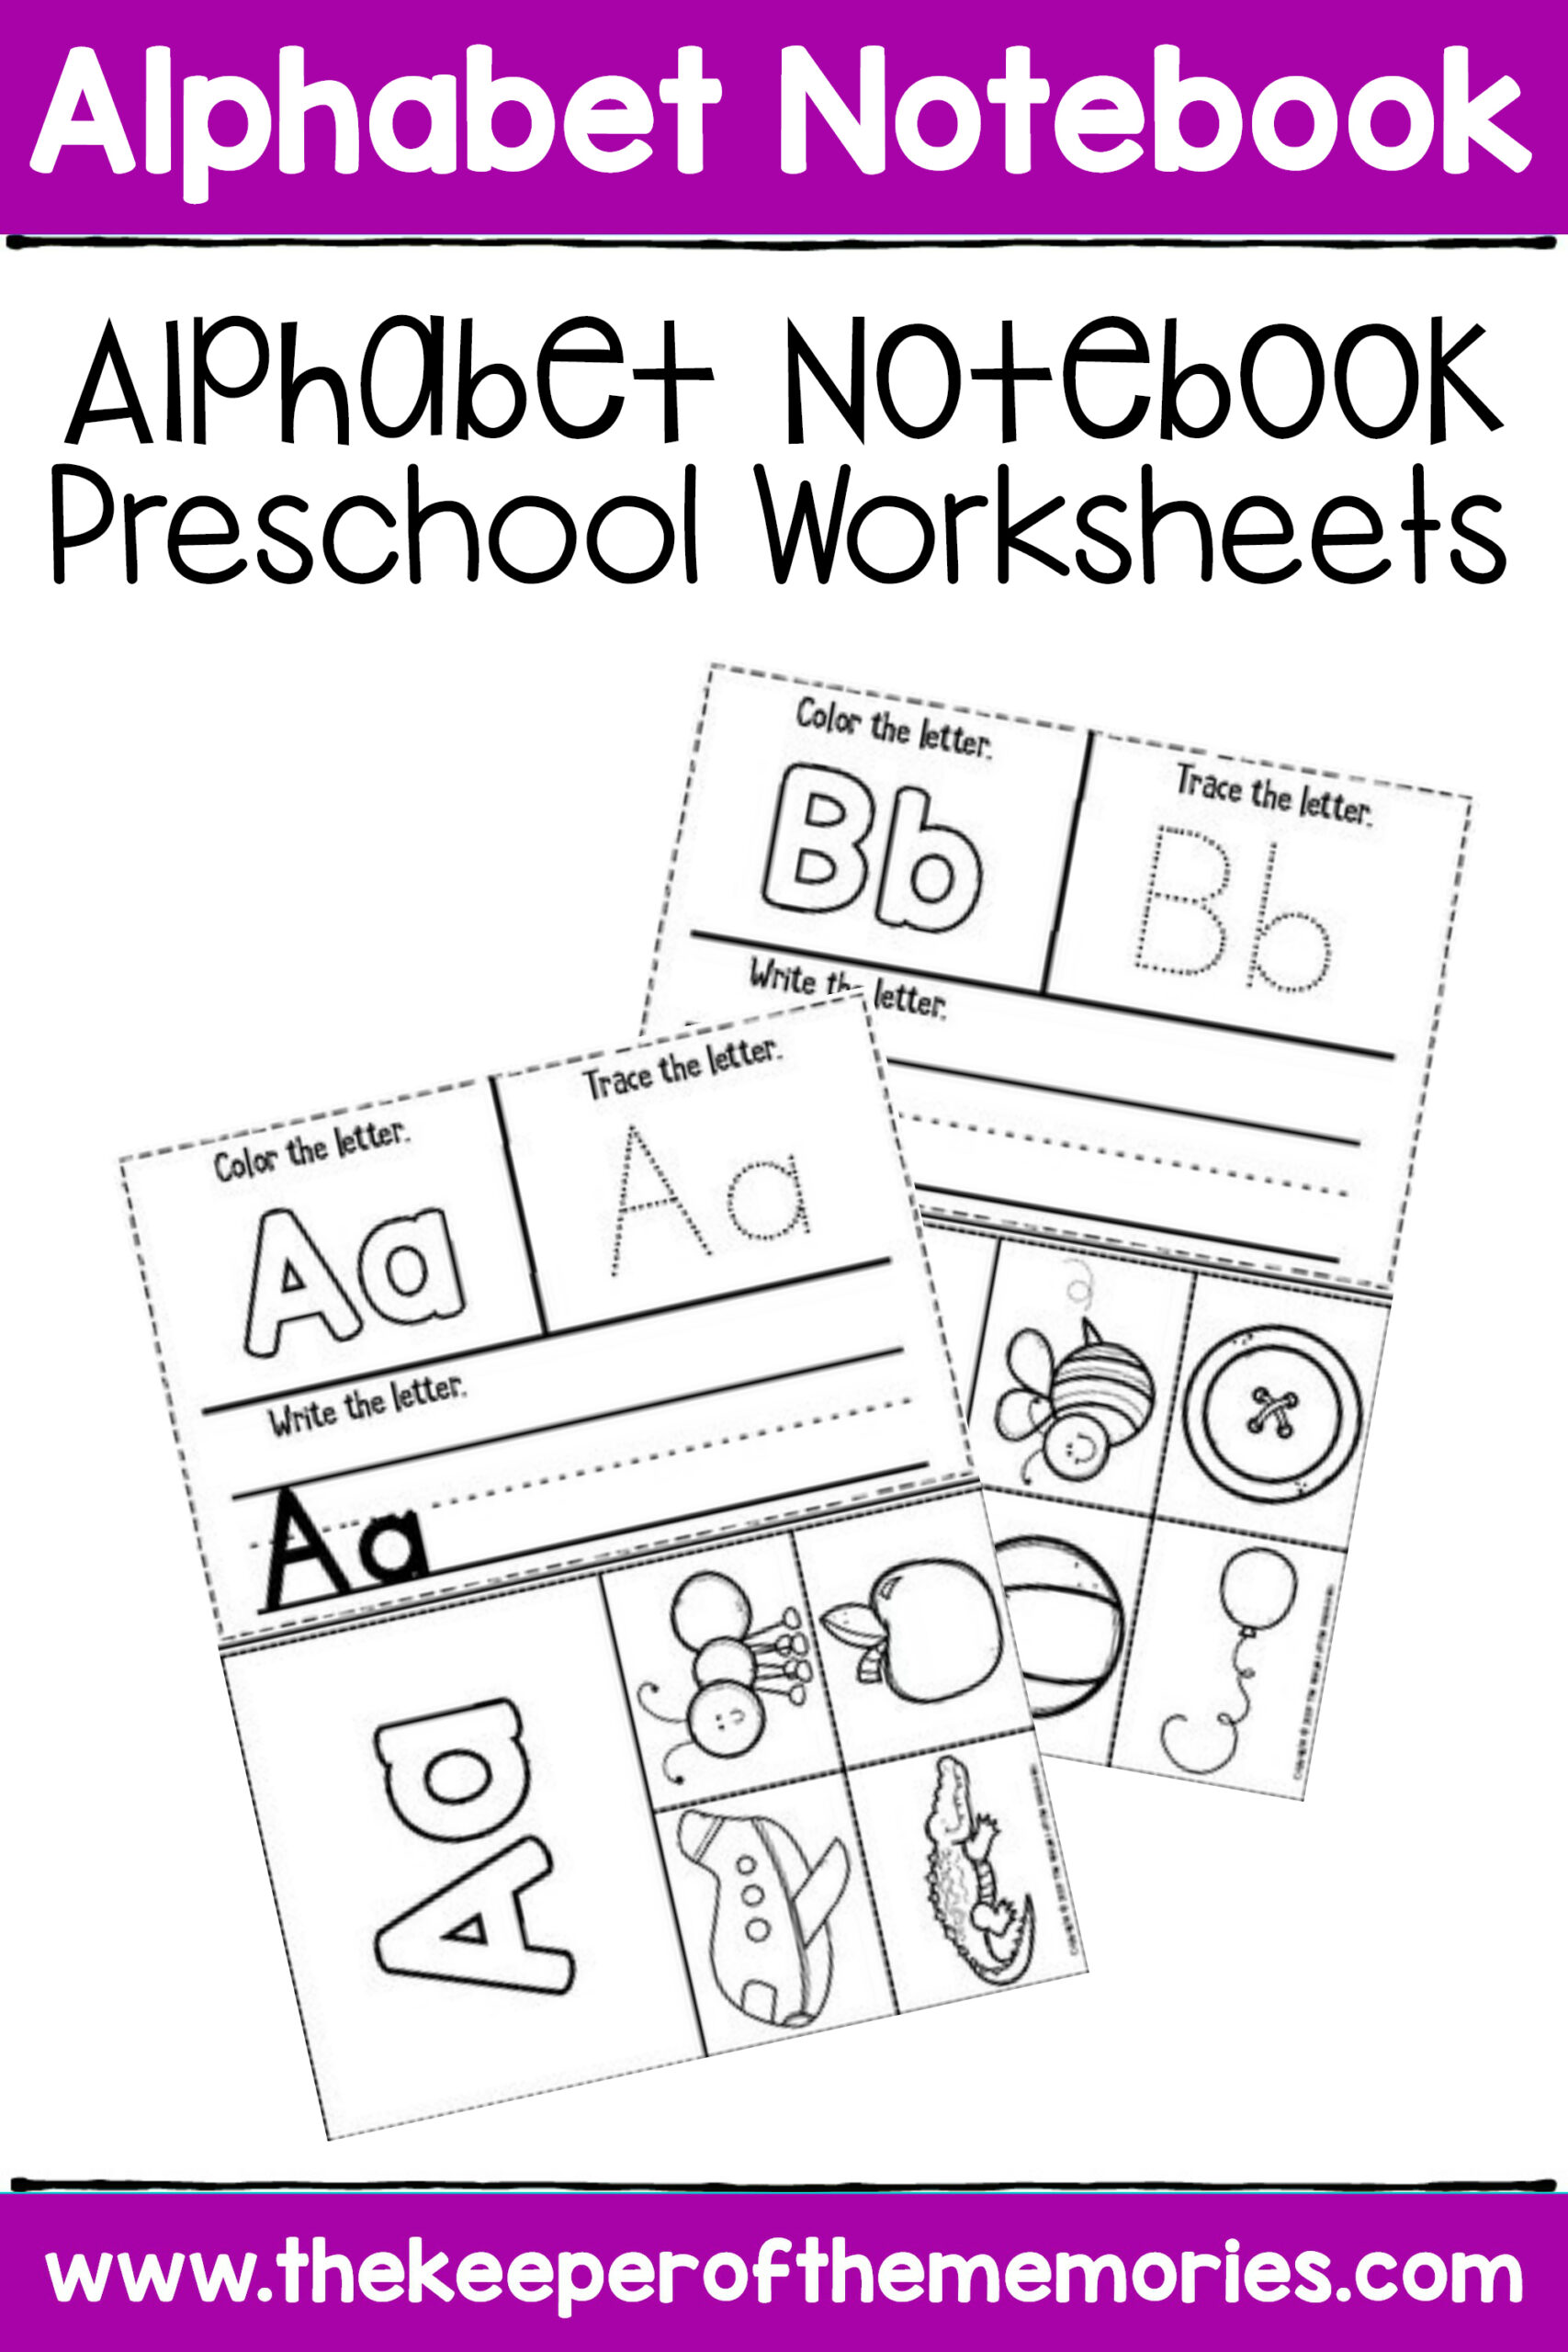 Free Printable Alphabet Notebook Preschool Worksheets throughout Alphabet Tracing Notebook